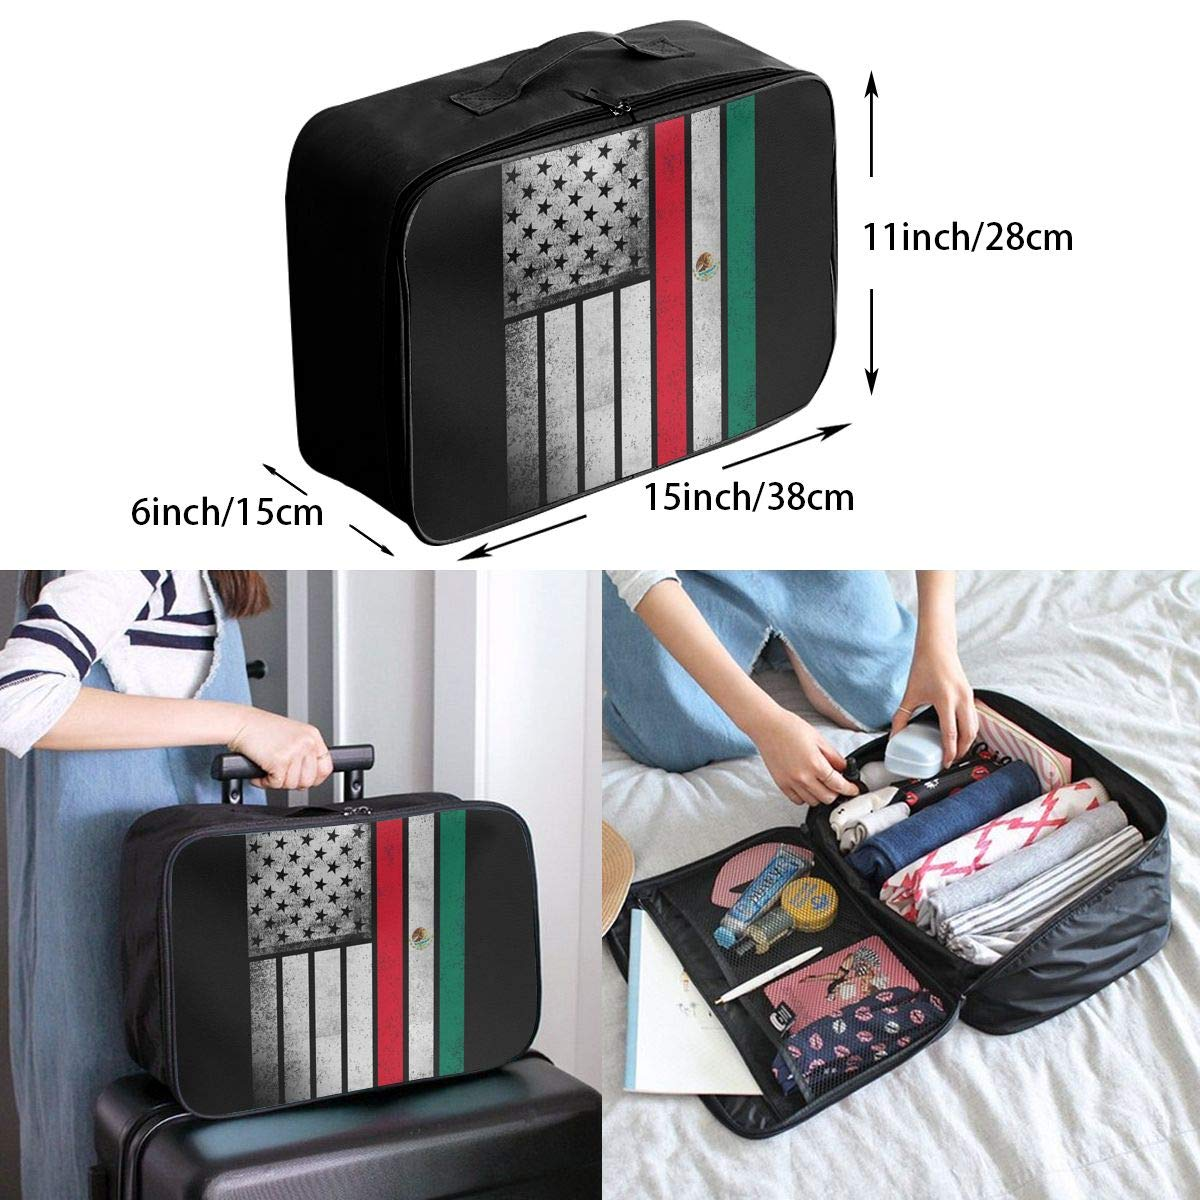 YueLJB Mexico Flag Lightweight Large Capacity Portable Luggage Bag Travel Duffel Bag Storage Carry Luggage Duffle Tote Bag